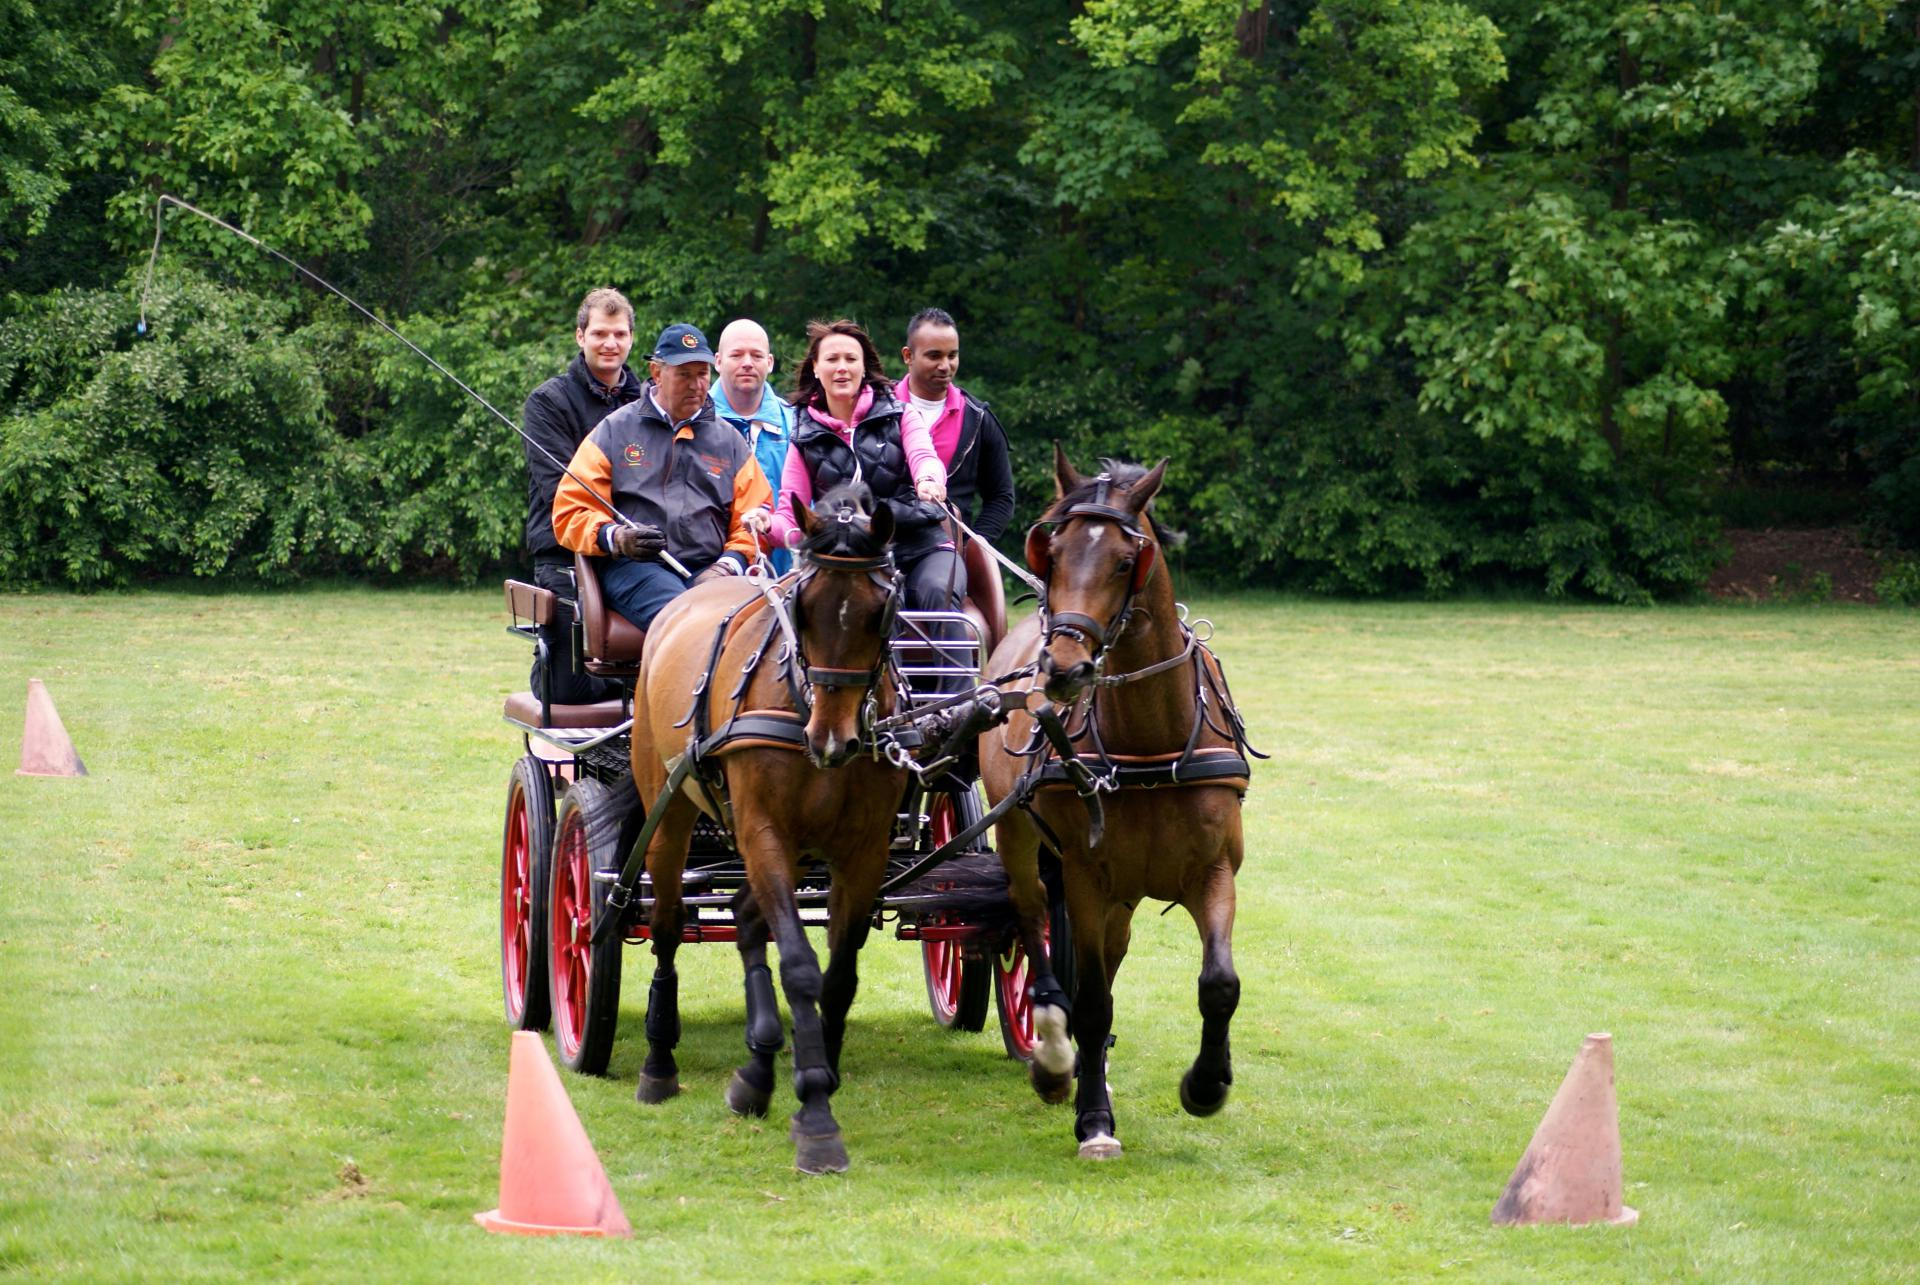 Workshop paarden mennen 36